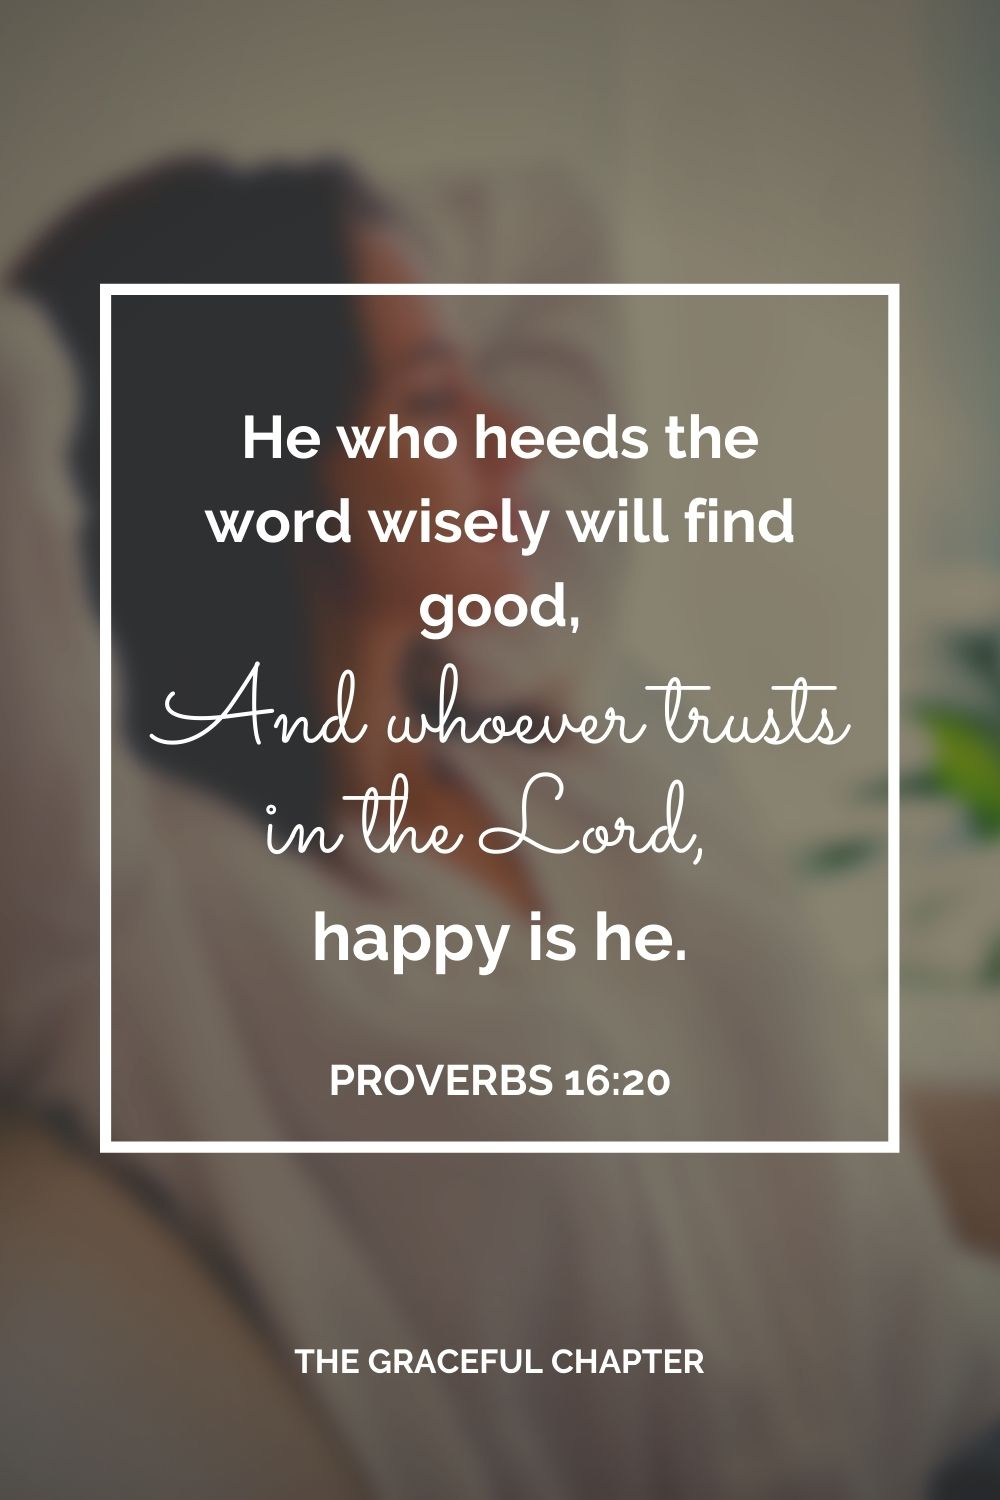 He who heeds the word wisely will find good, And whoever trusts in the Lord, happy is he. Proverbs 16:20